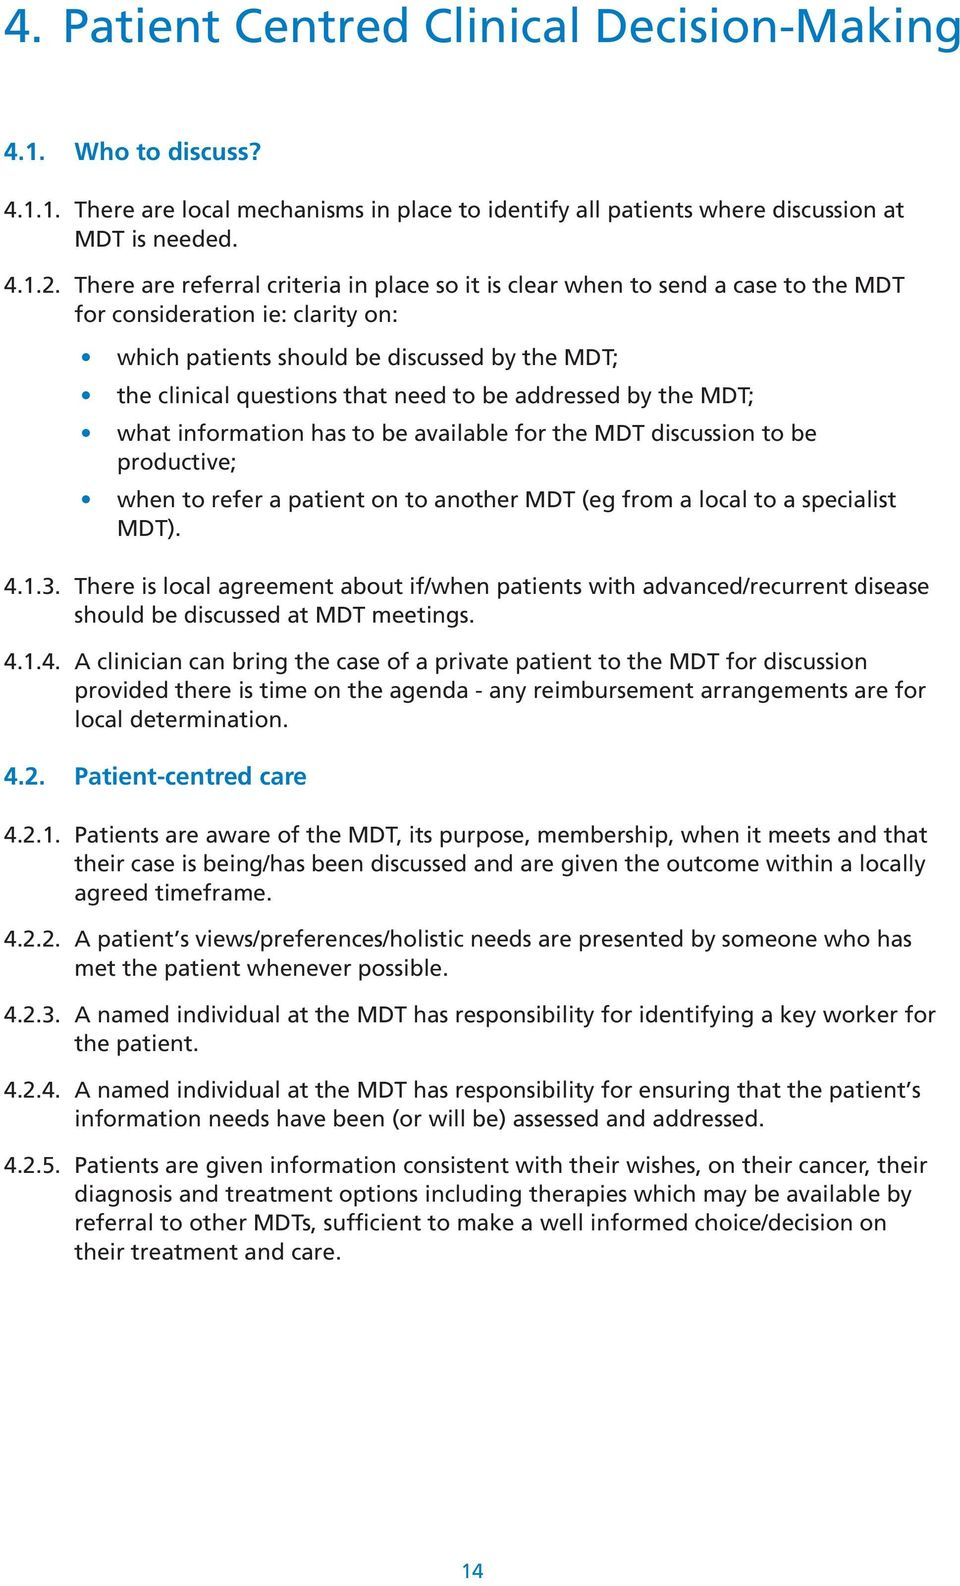 be addressed by the MDT; what information has to be available for the MDT discussion to be productive; when to refer a patient on to another MDT (eg from a local to a specialist MDT). 4.1.3.